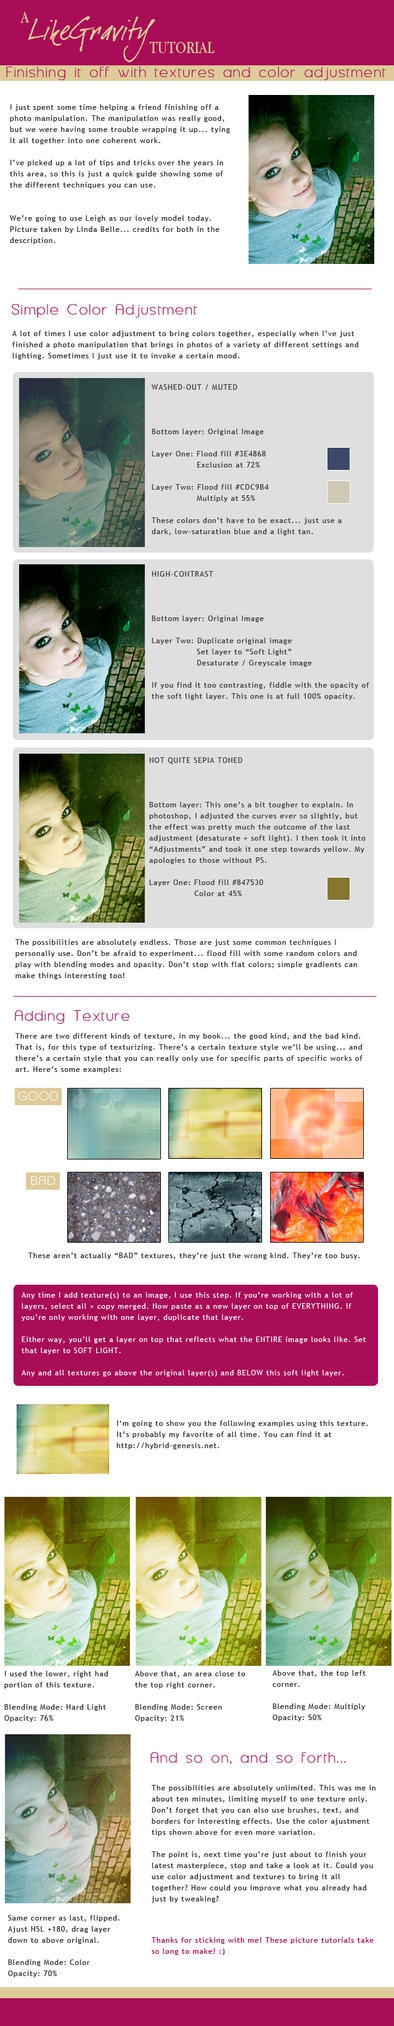 Tutorial - Color and Textures by LikeGravity